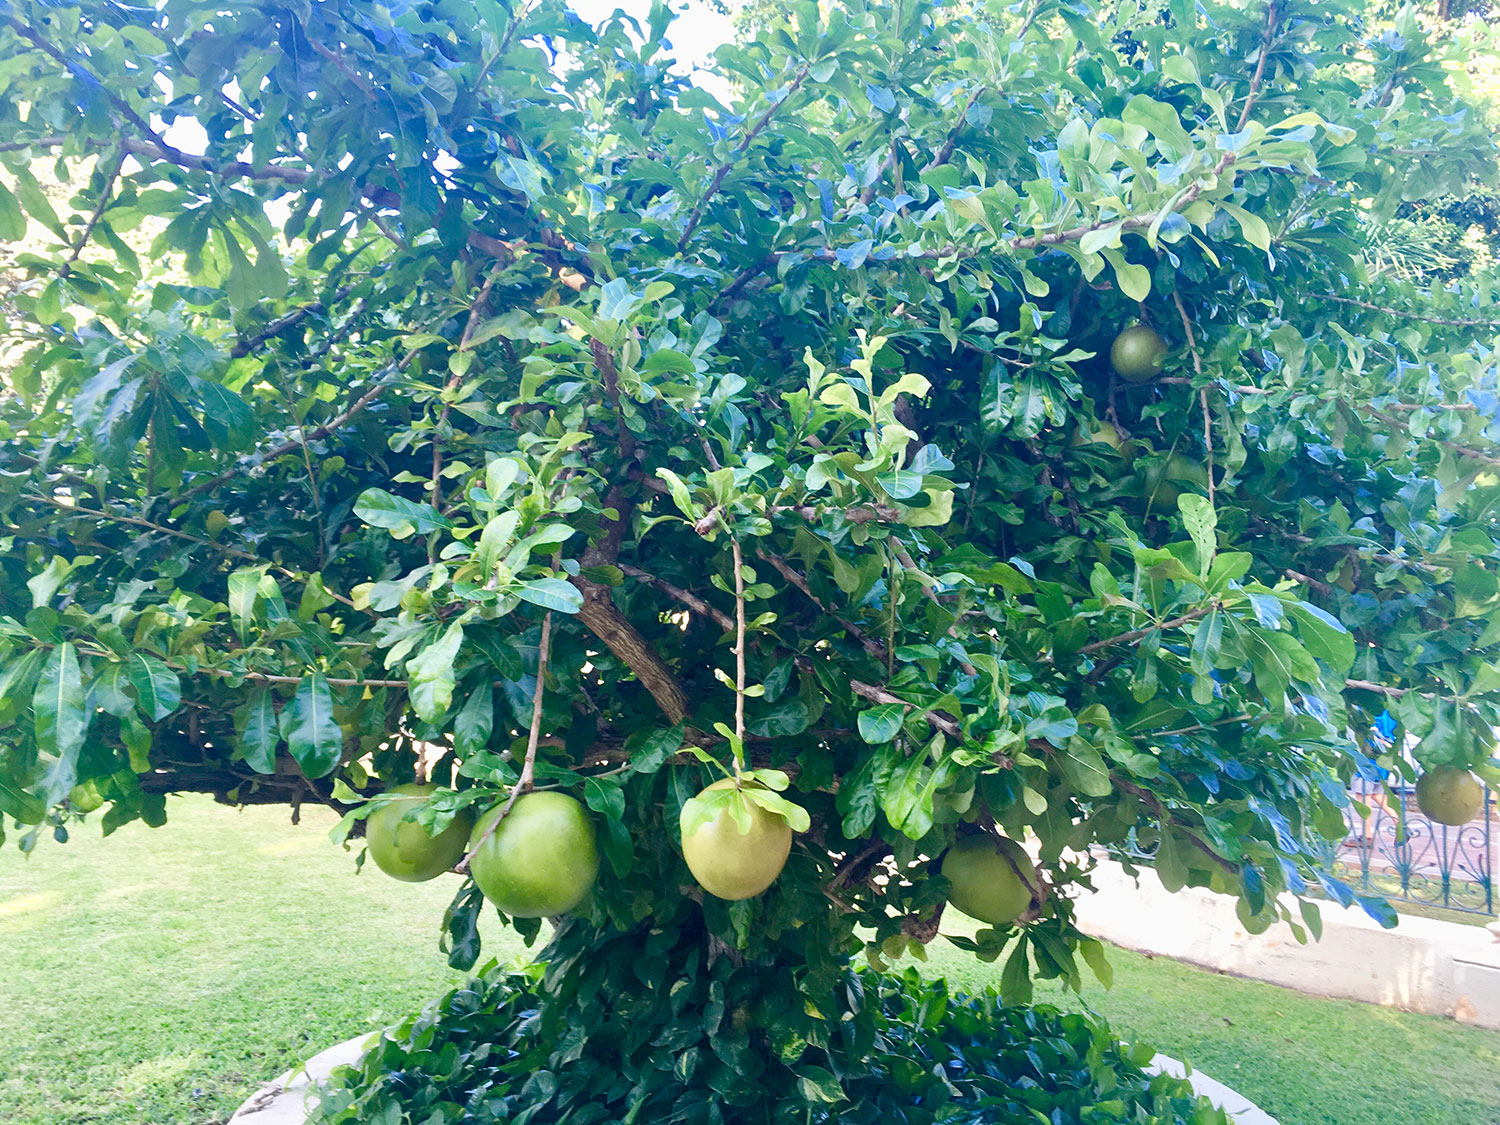 The calabash tree in the front garden.